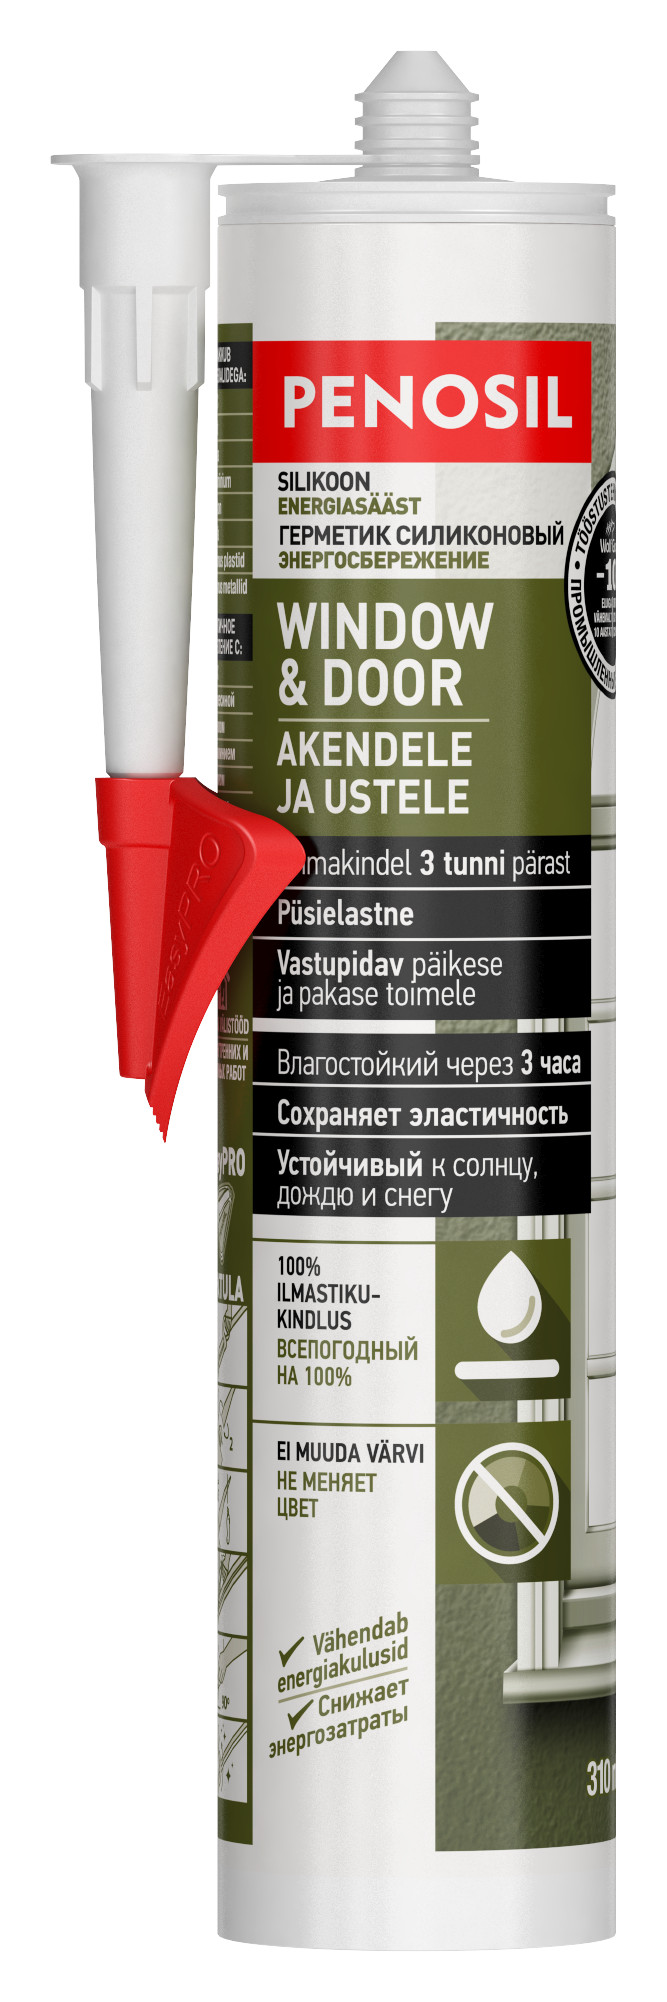 PENOSIL Window & Door